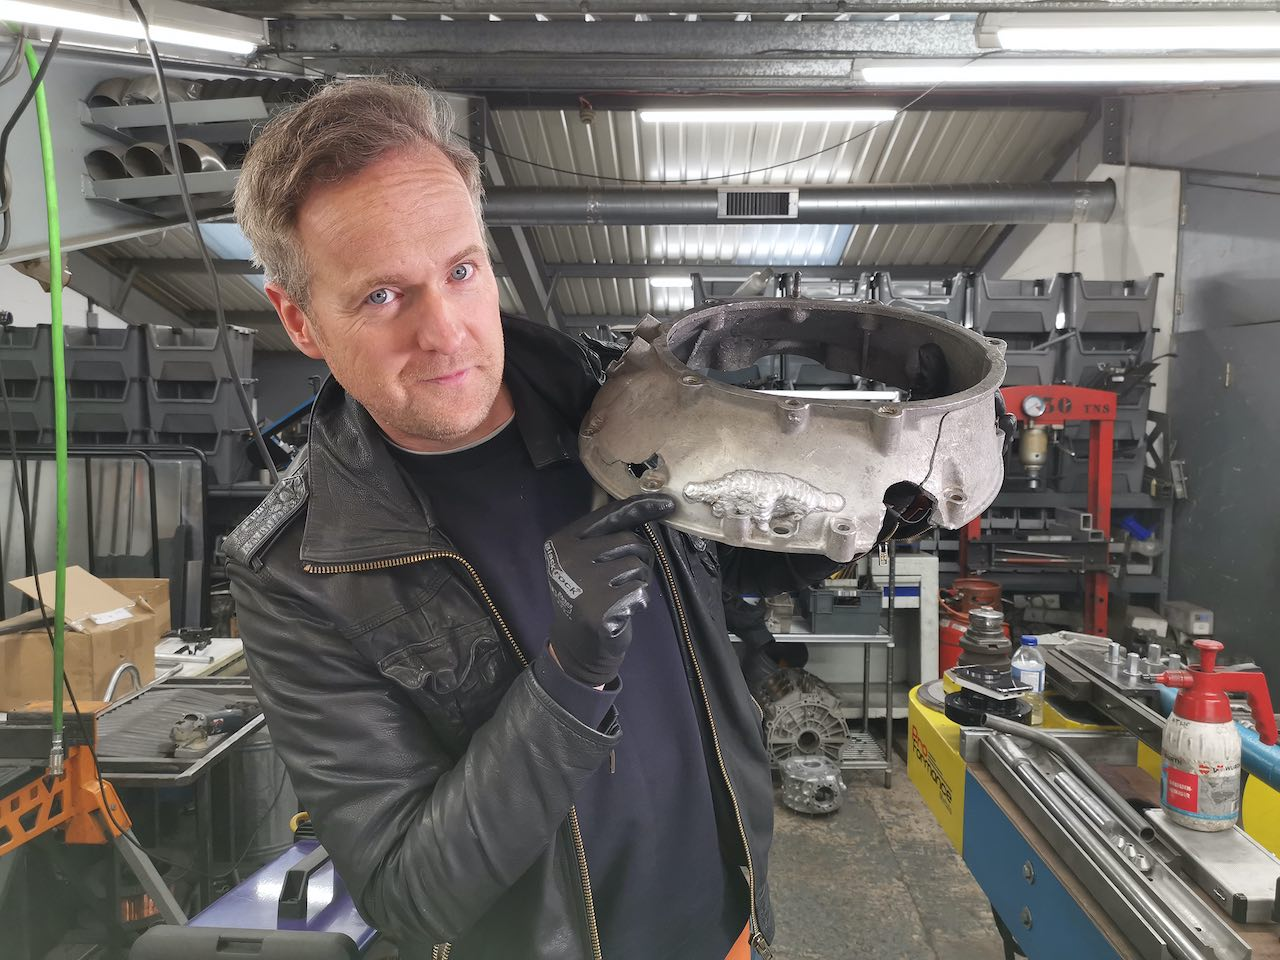 Fuzz and Tim are back with a new series of Car SOS